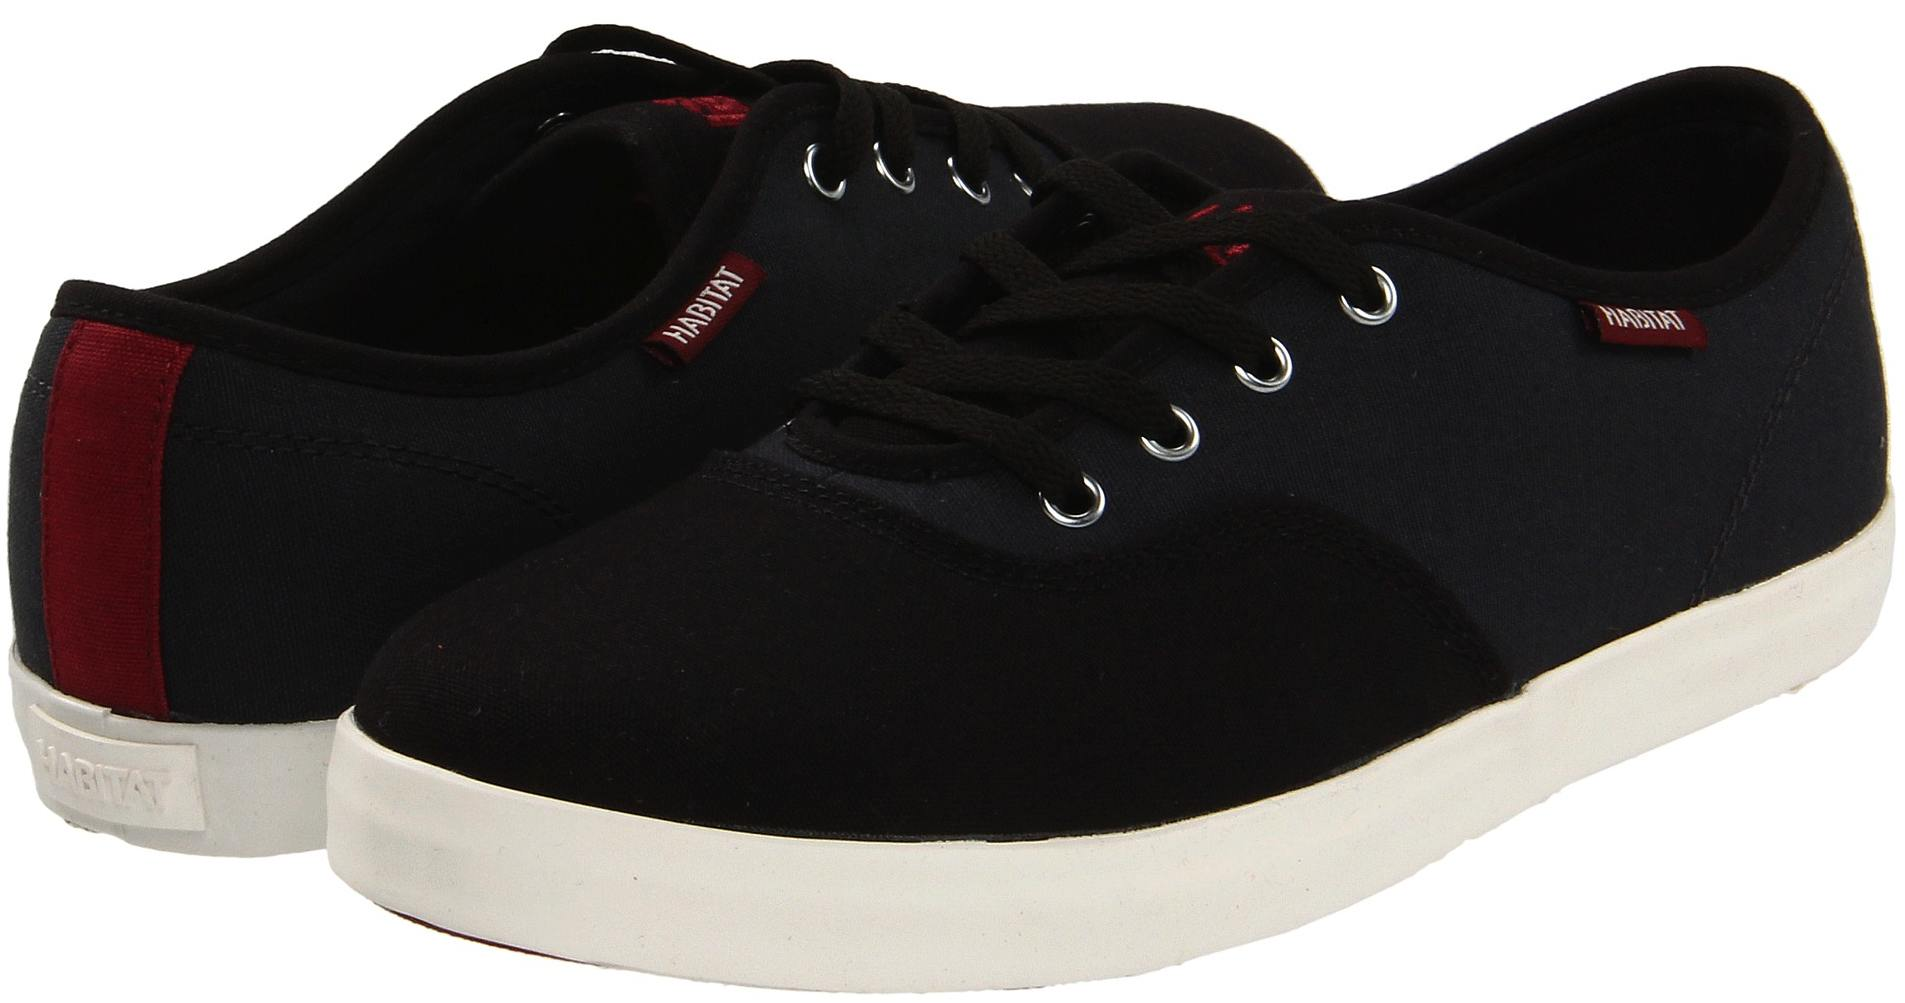 Vegan Habitat Expo skateboard shoe